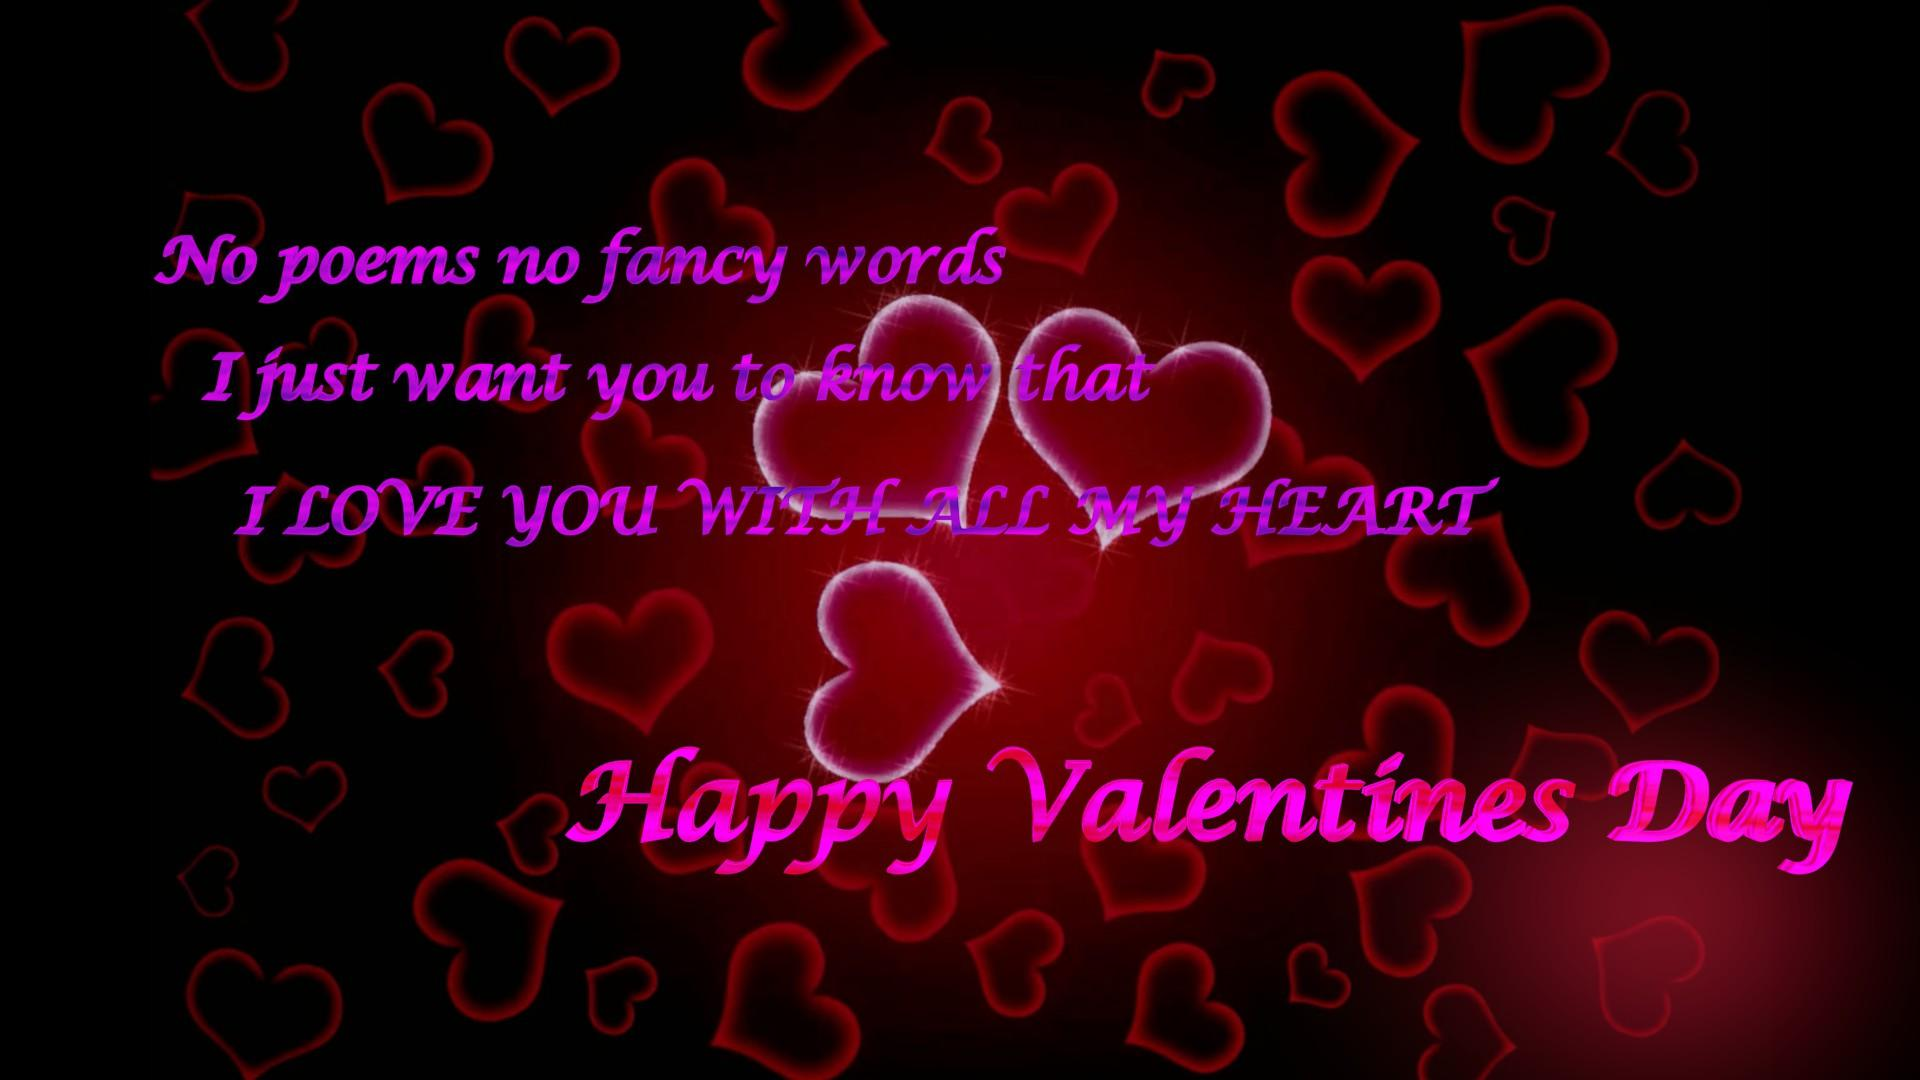 happy valentines day poems, Ideas